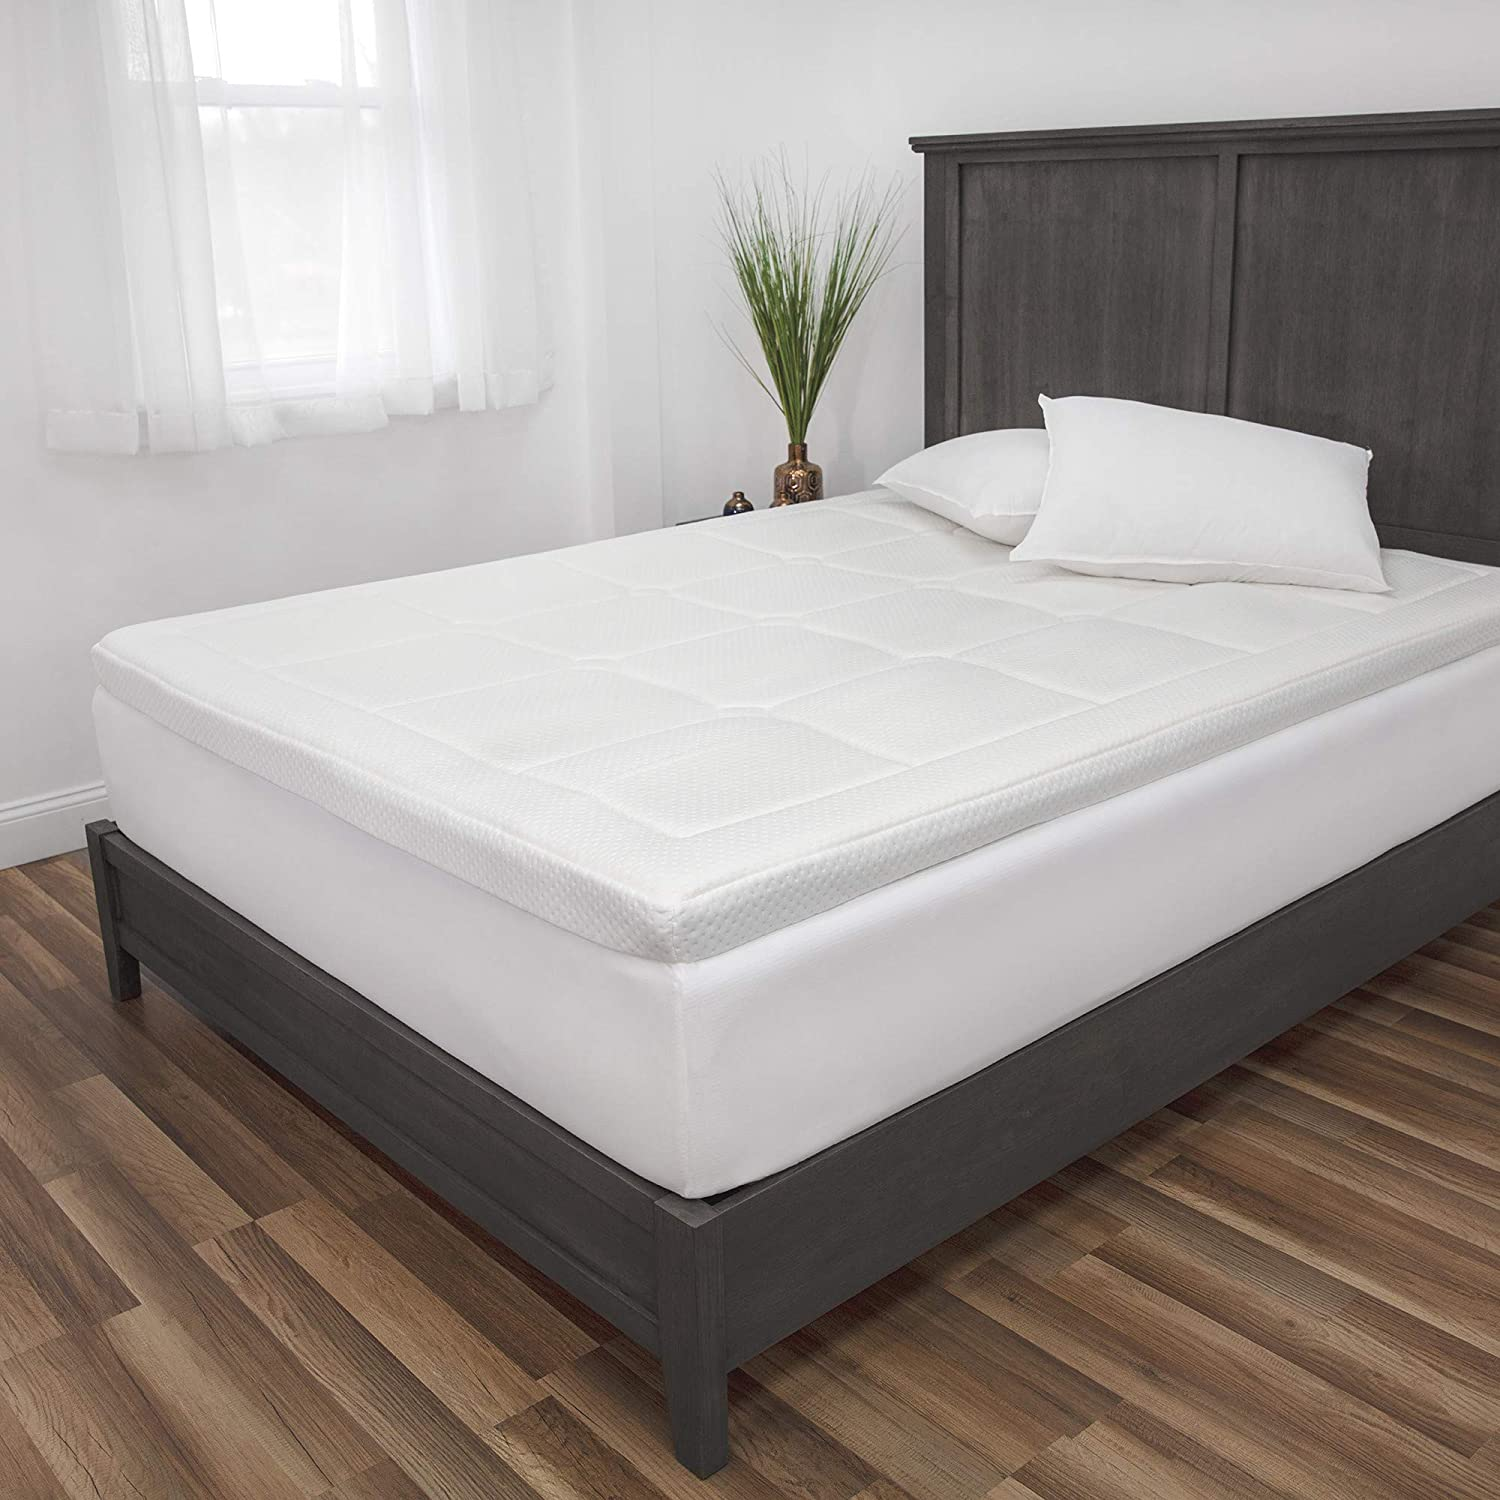 Japan Maker New SensorPEDIC 3 in Euro Majestic White Full Mattress Topper sold out